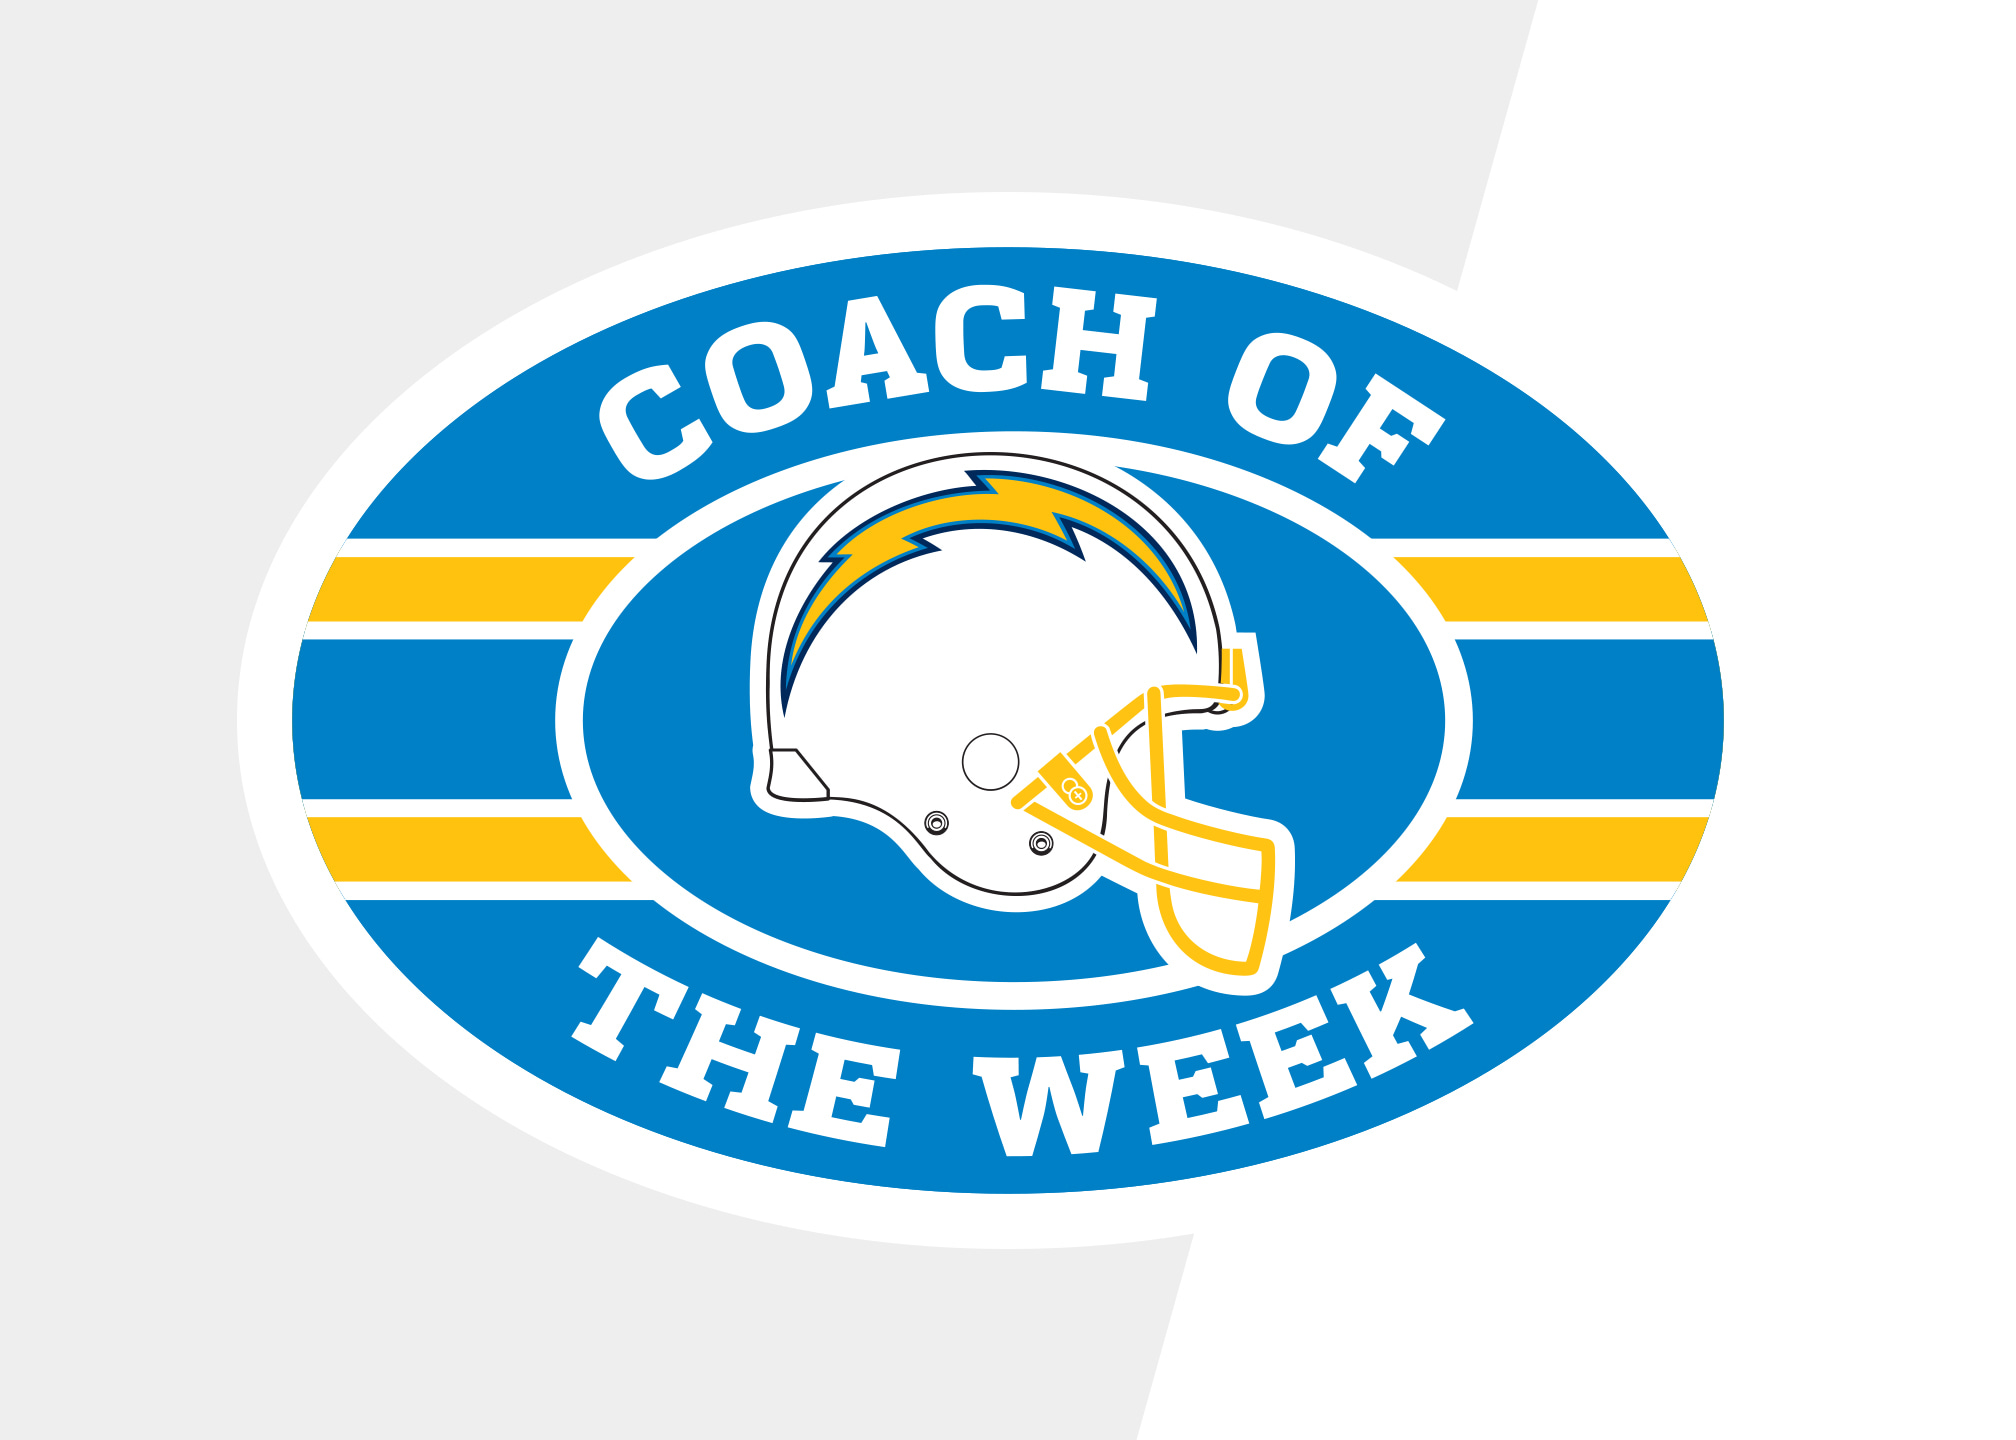 Los Angeles Chargers Coach of the Week